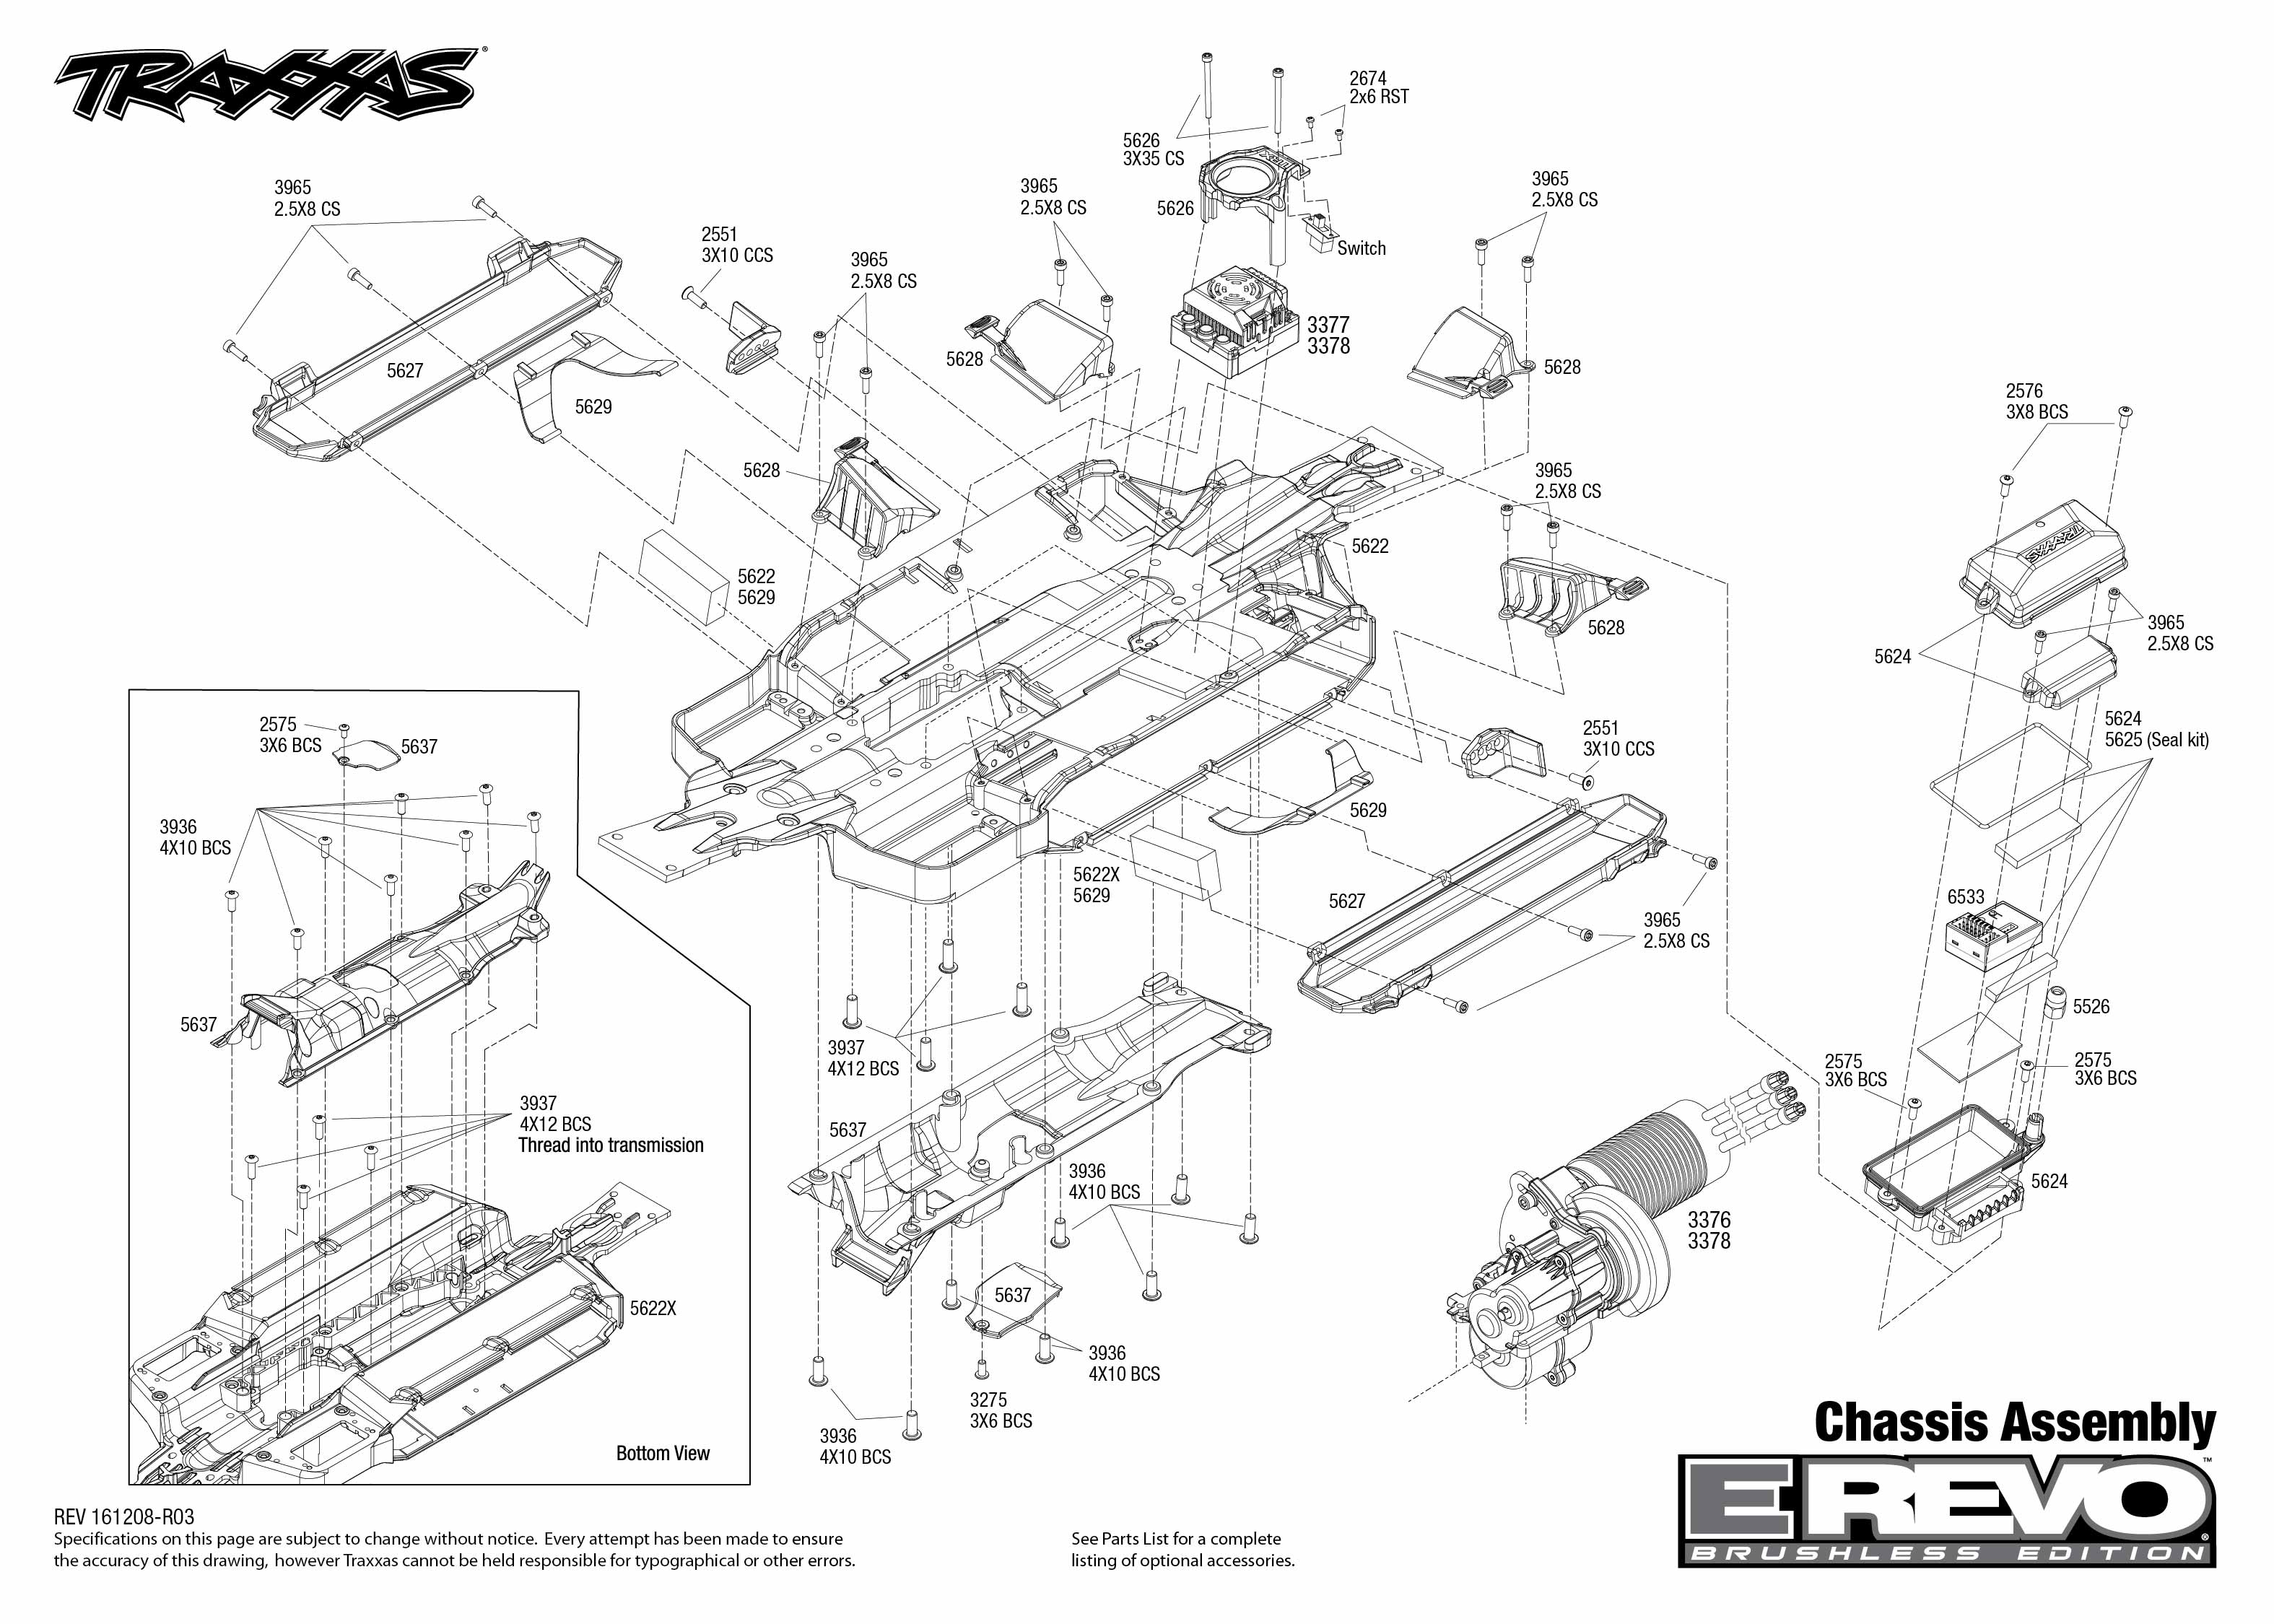 Basic Wiring Diagram Quadcopter Manual Schematics This Is A Simple Dryer That Shows Examples Of Most Mini Cc3d Revo Trusted Diagrams Software